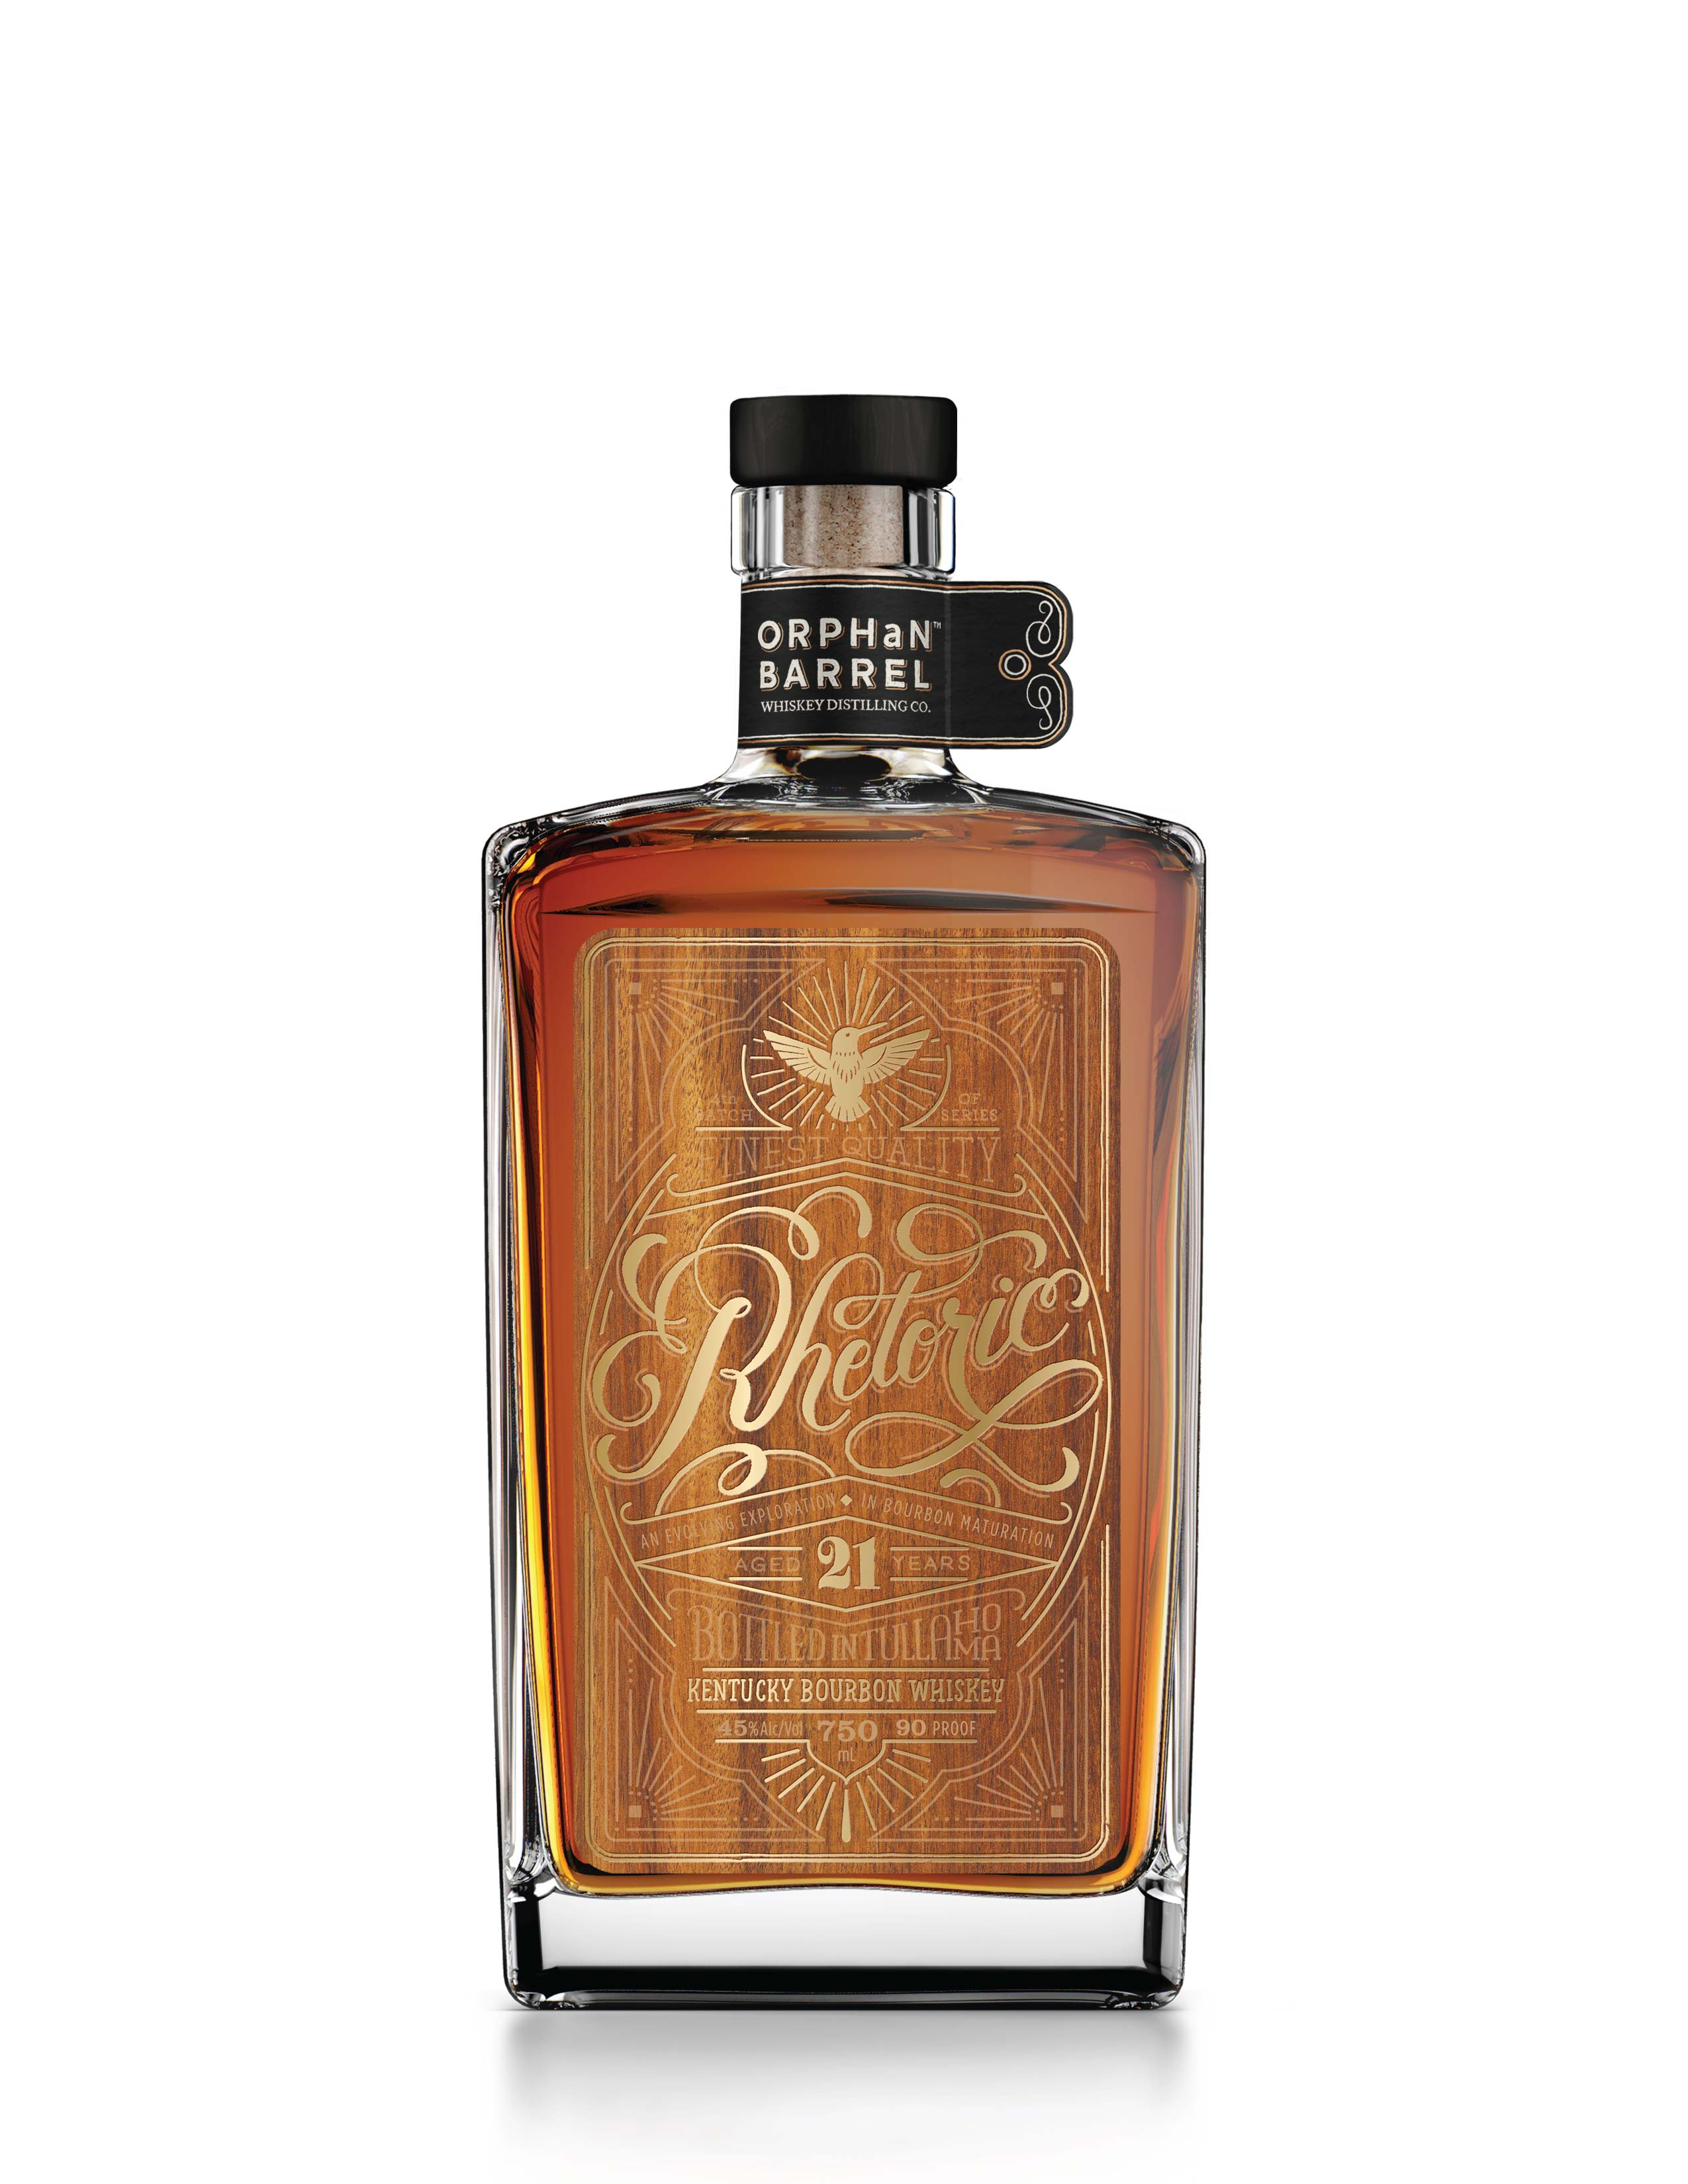 Diageo Orphan Barrel Project Rhetoric Bourbon 21 Years Old